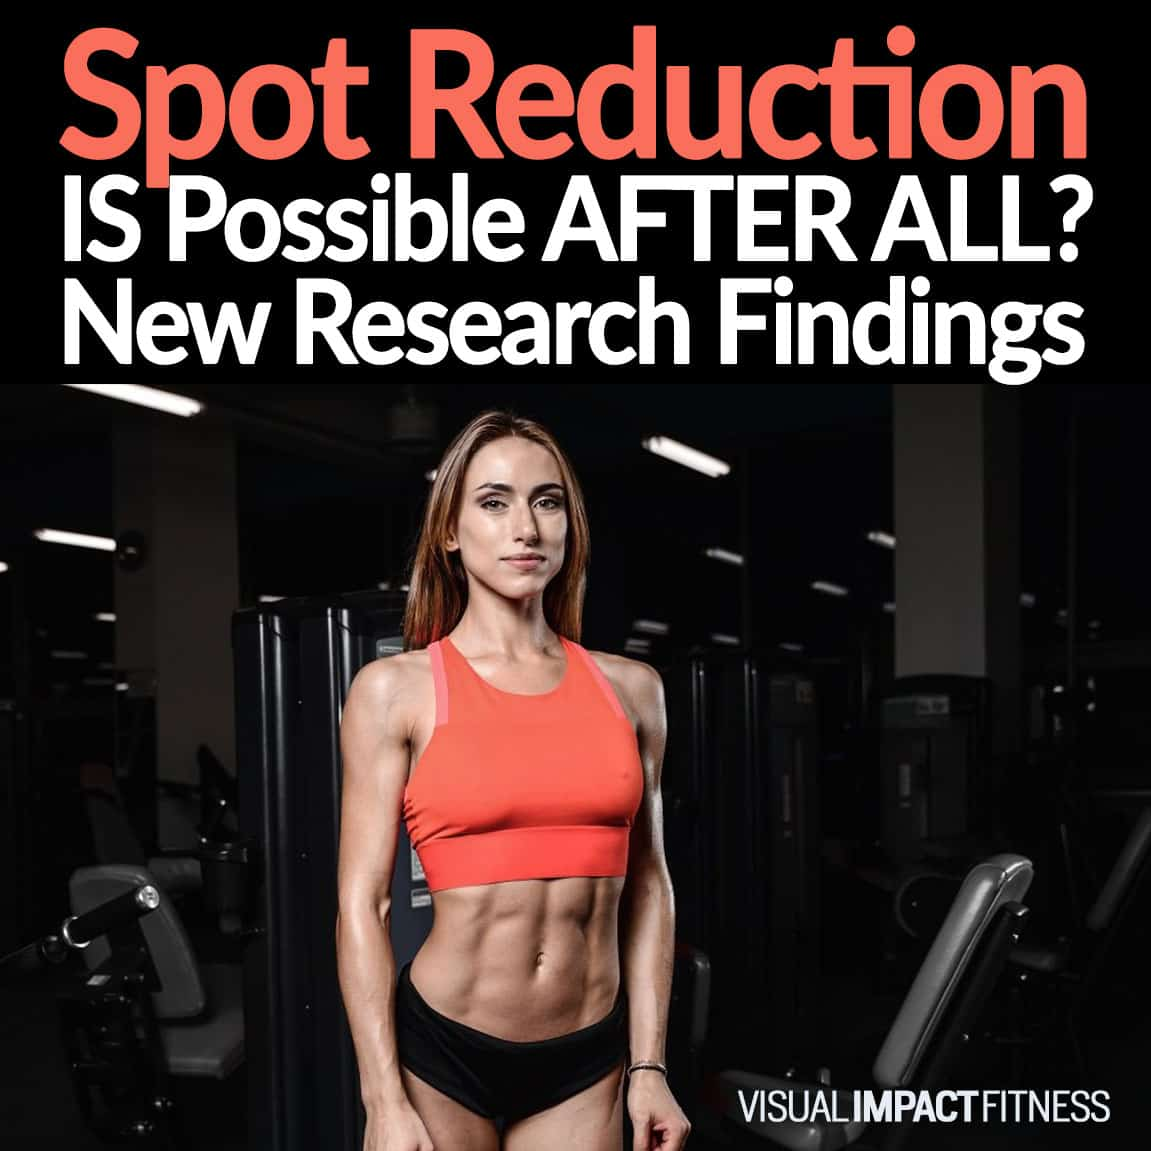 Spot Reduction IS Possible? New Research Findings